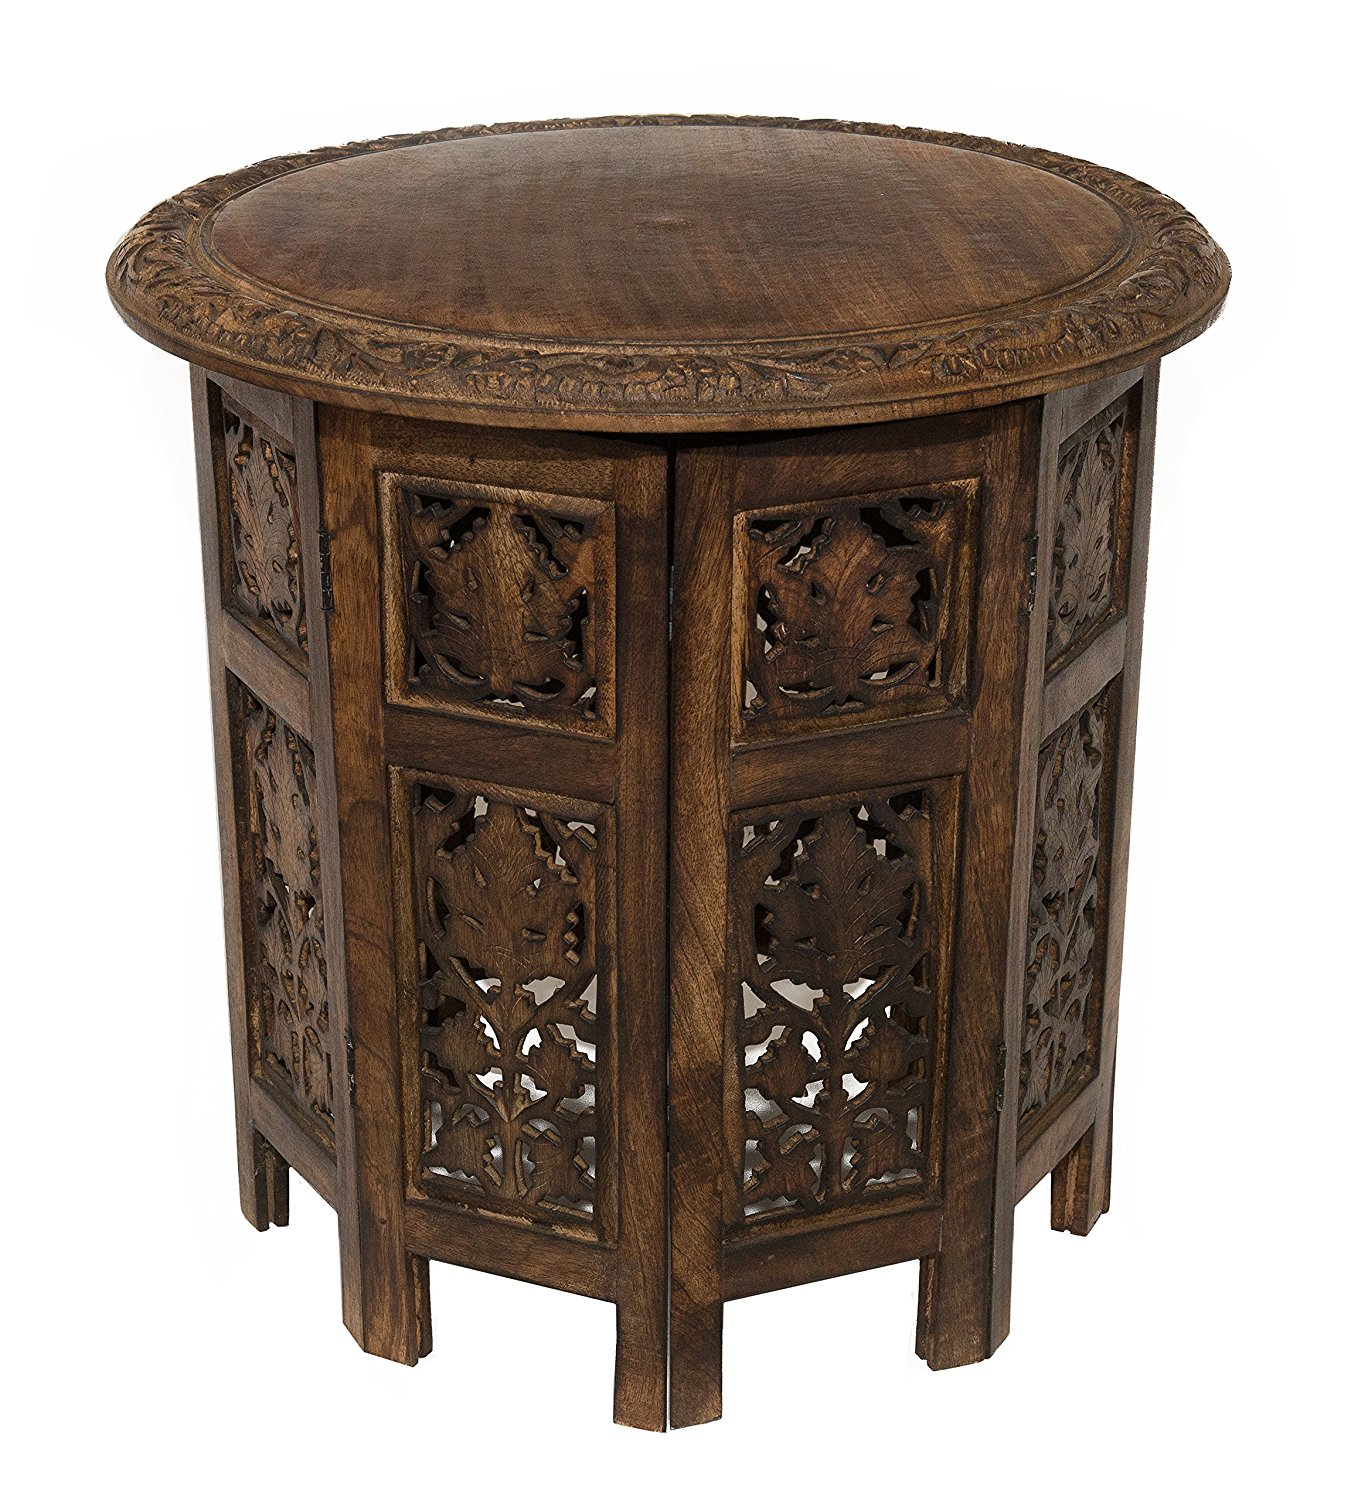 lovely small accent table for ornate wooden round pier one imports dining room patio chairs furniture behind couch wall decor ideas wellington mid century replica west elm console